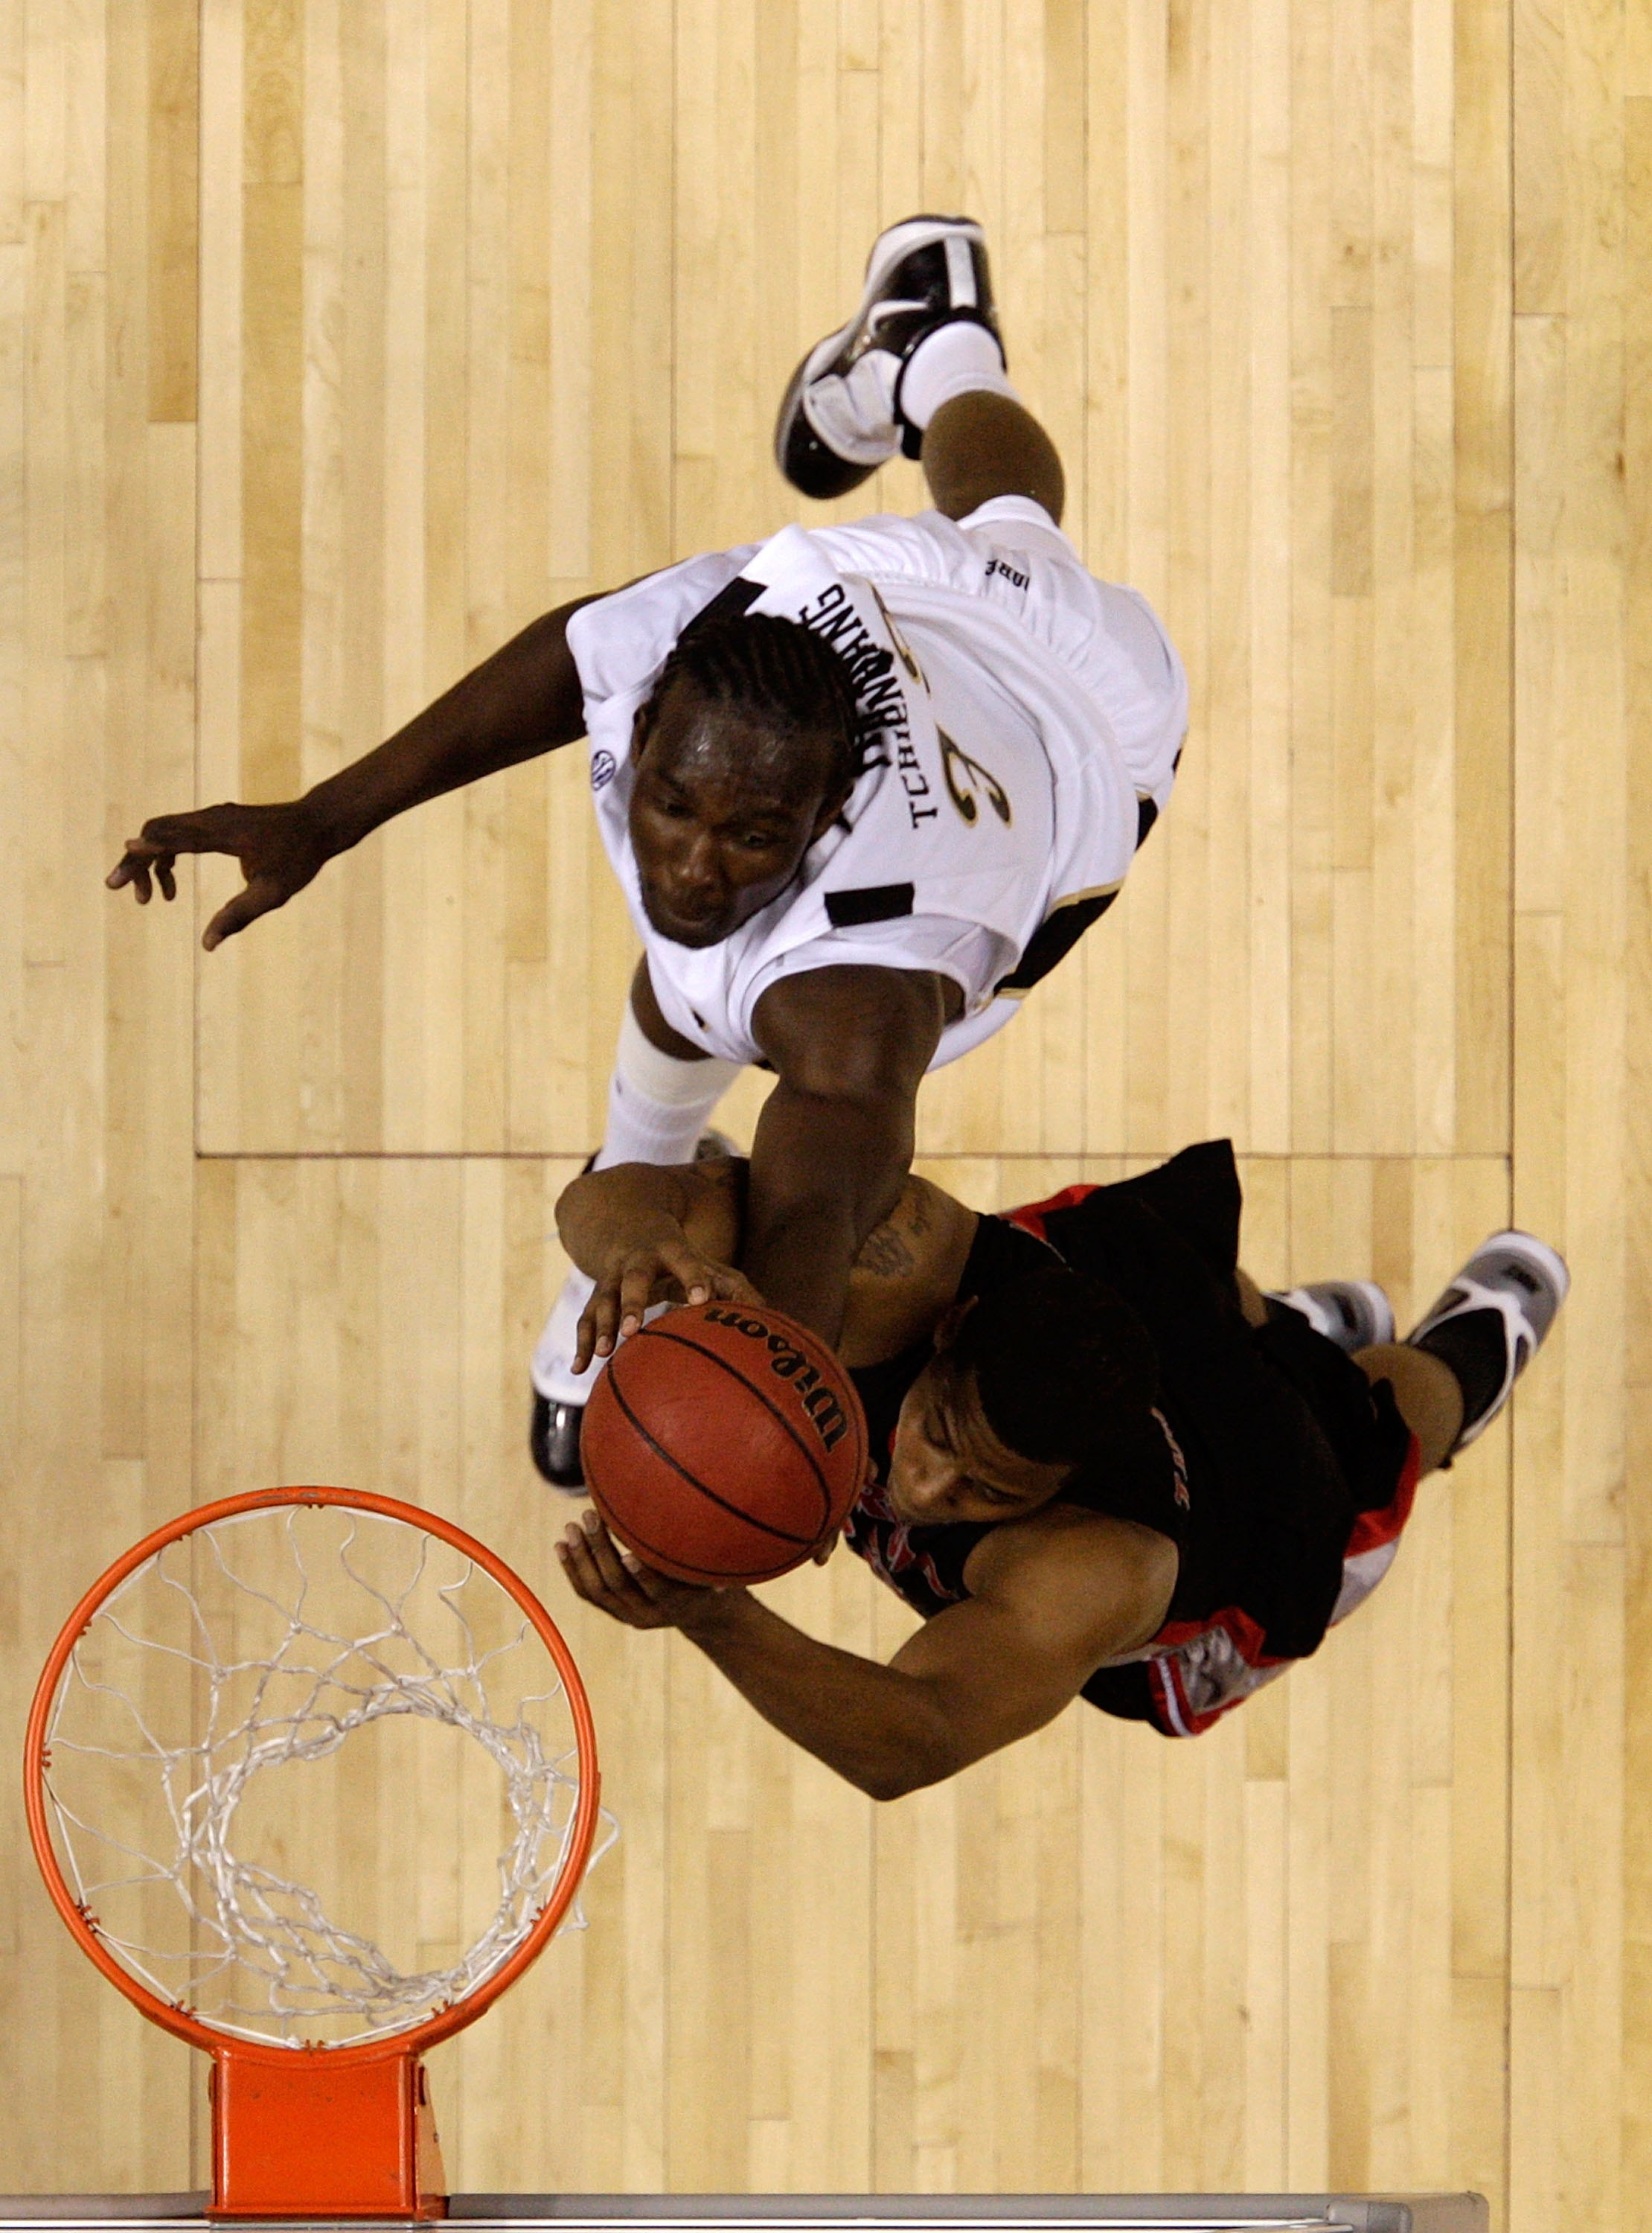 NASHVILLE, TN - MARCH 12:  Steve Tchiengang #33 of the Vanderbilt Commodores fights for a rebound against Trey Thompkins #33 of the Georgia Bulldogs during the quarterfinals of the SEC Men's Basketball Tournament at the Bridgestone Arena on March 12, 2010